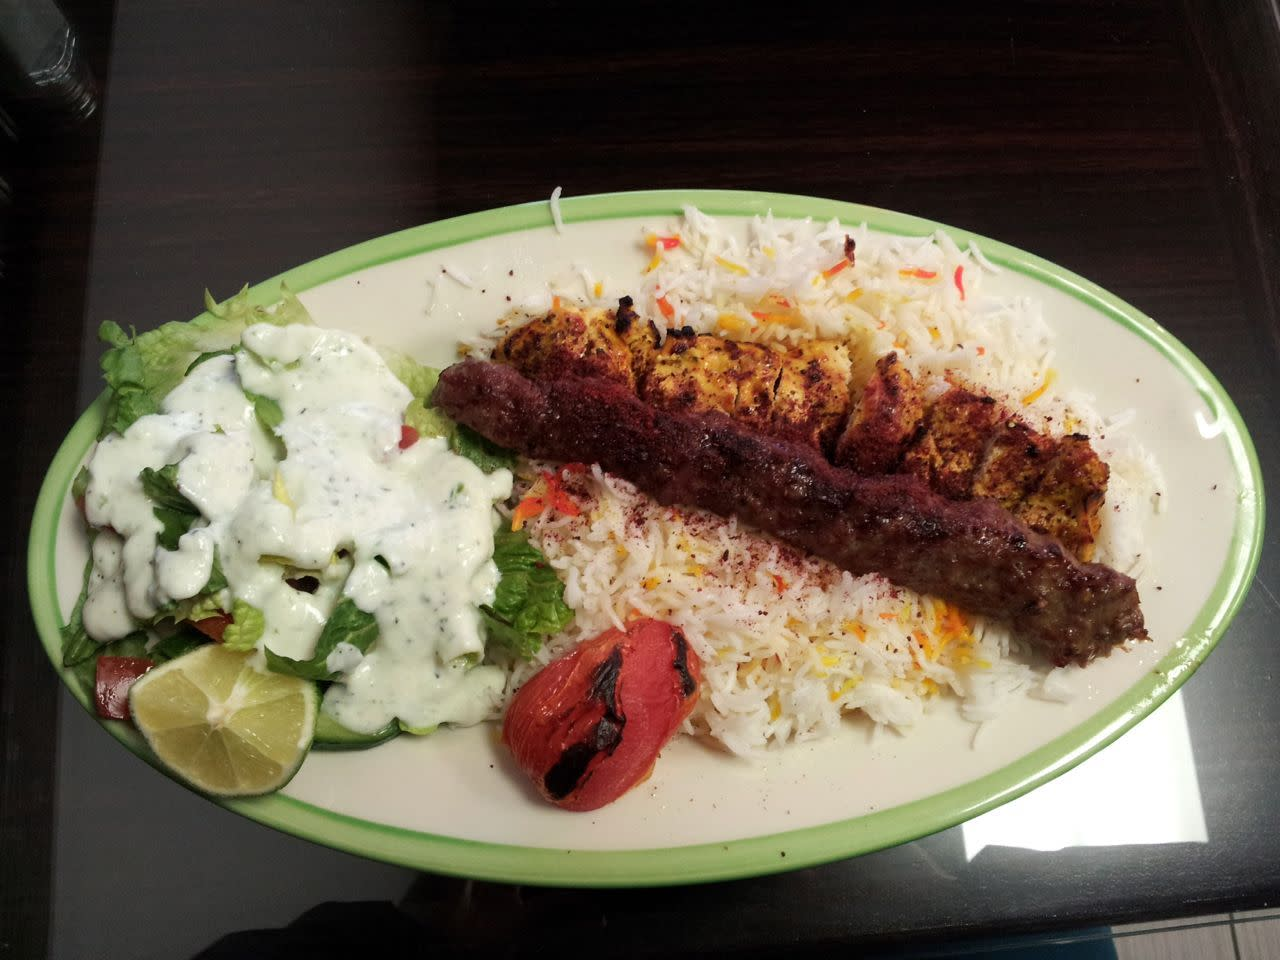 Daddy's Delight kebab meal